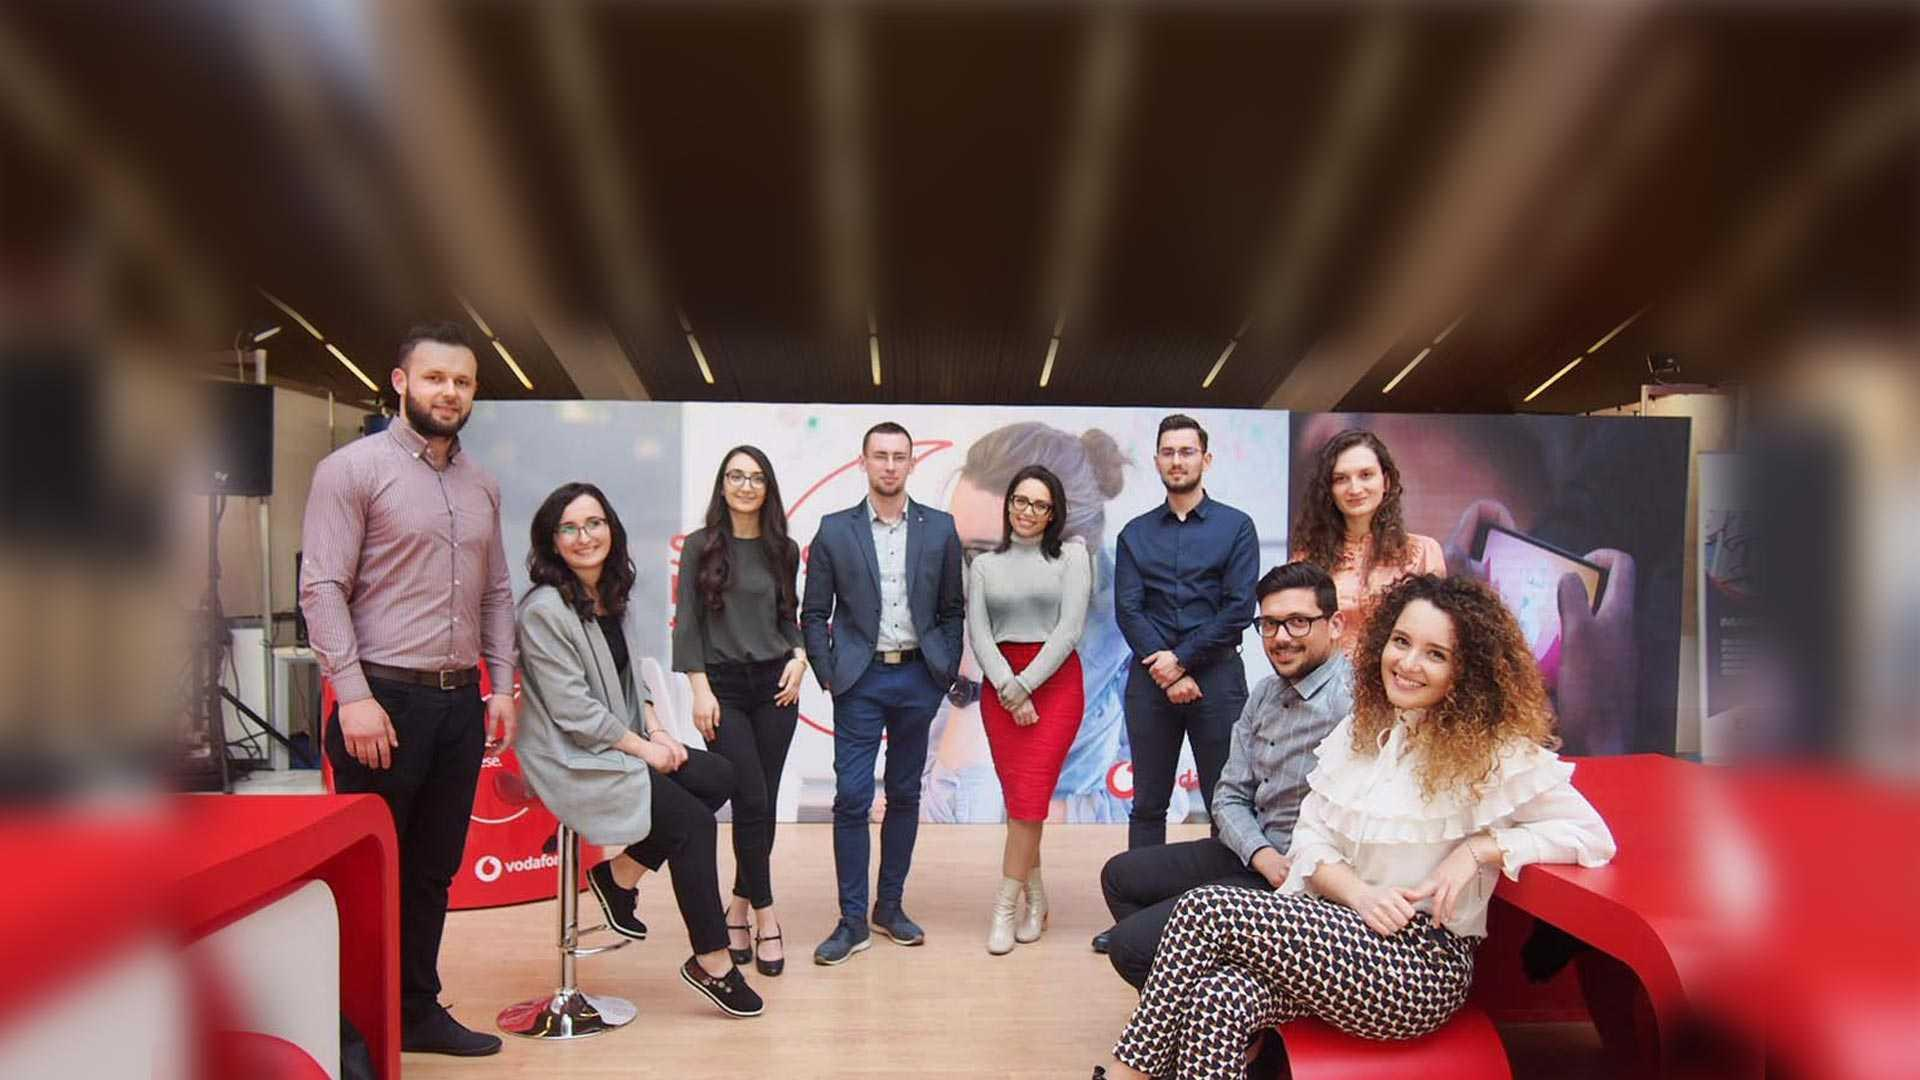 Discover Vodafone Graduate Program